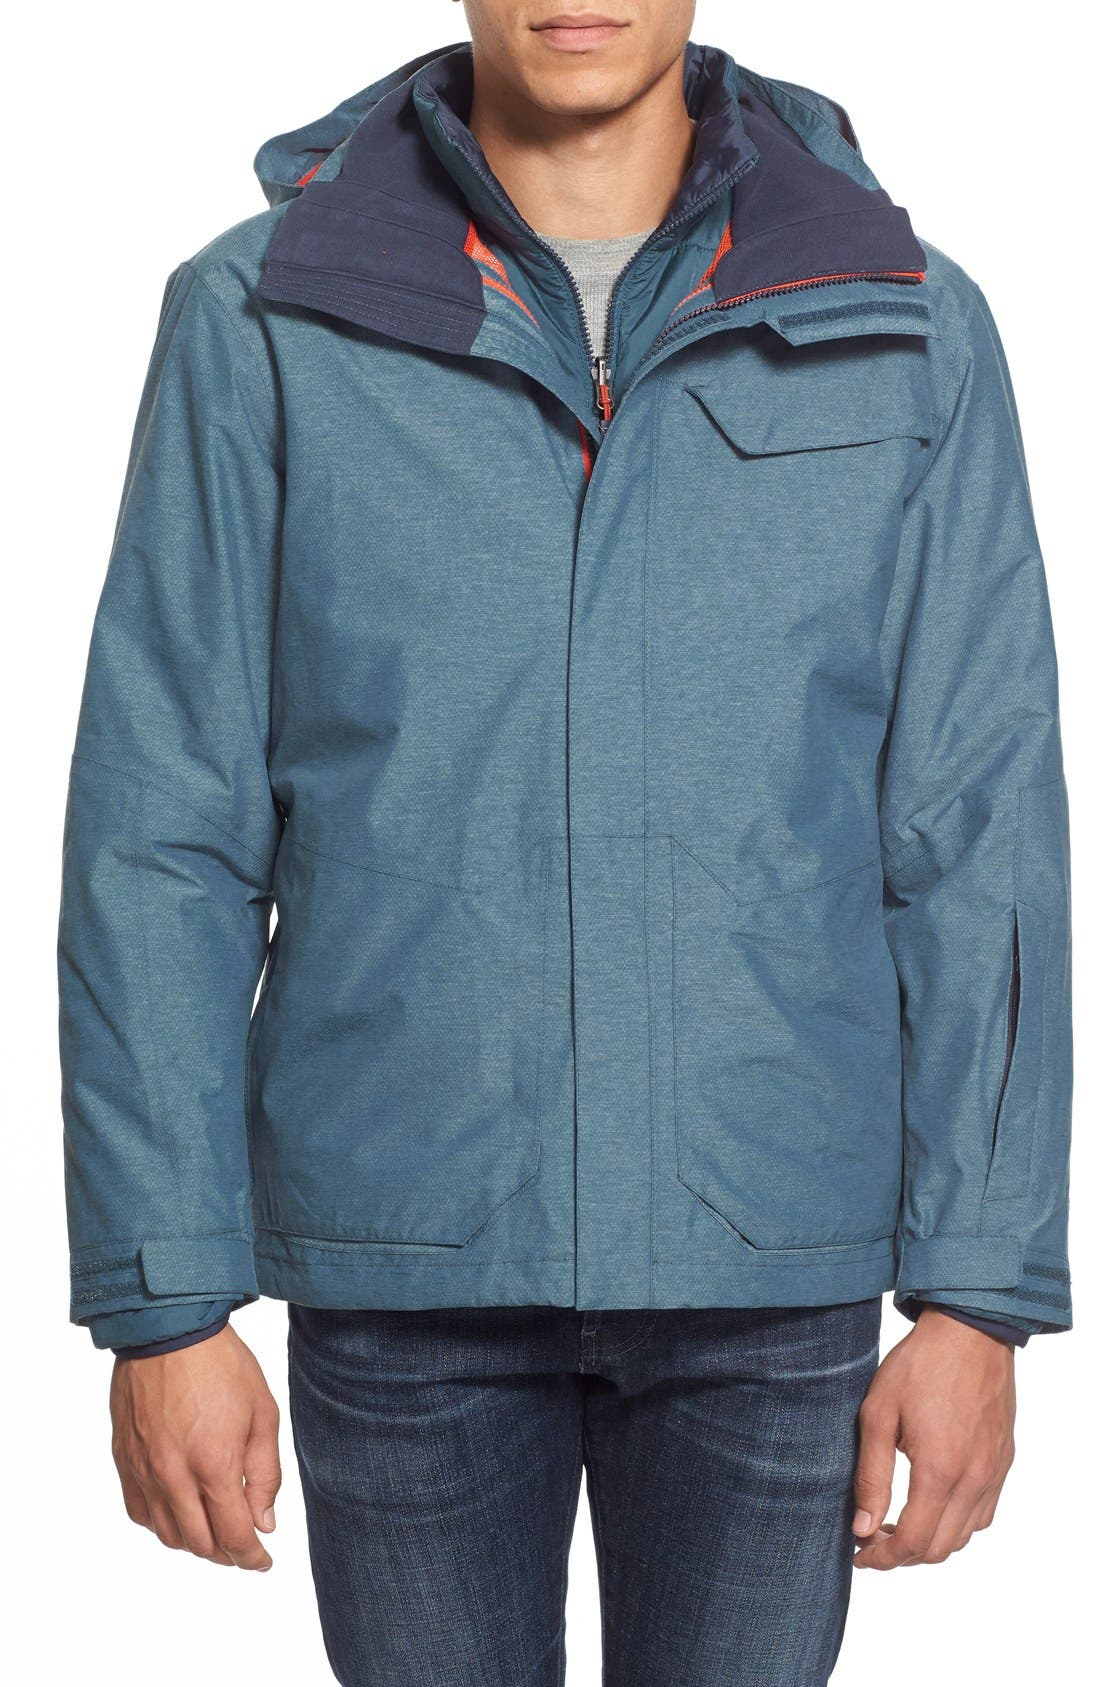 27694a21ef05 ... where to buy the north face marsellus triclimate waterproof 3 in 1  jacket nordstrom 284d4 e64c4